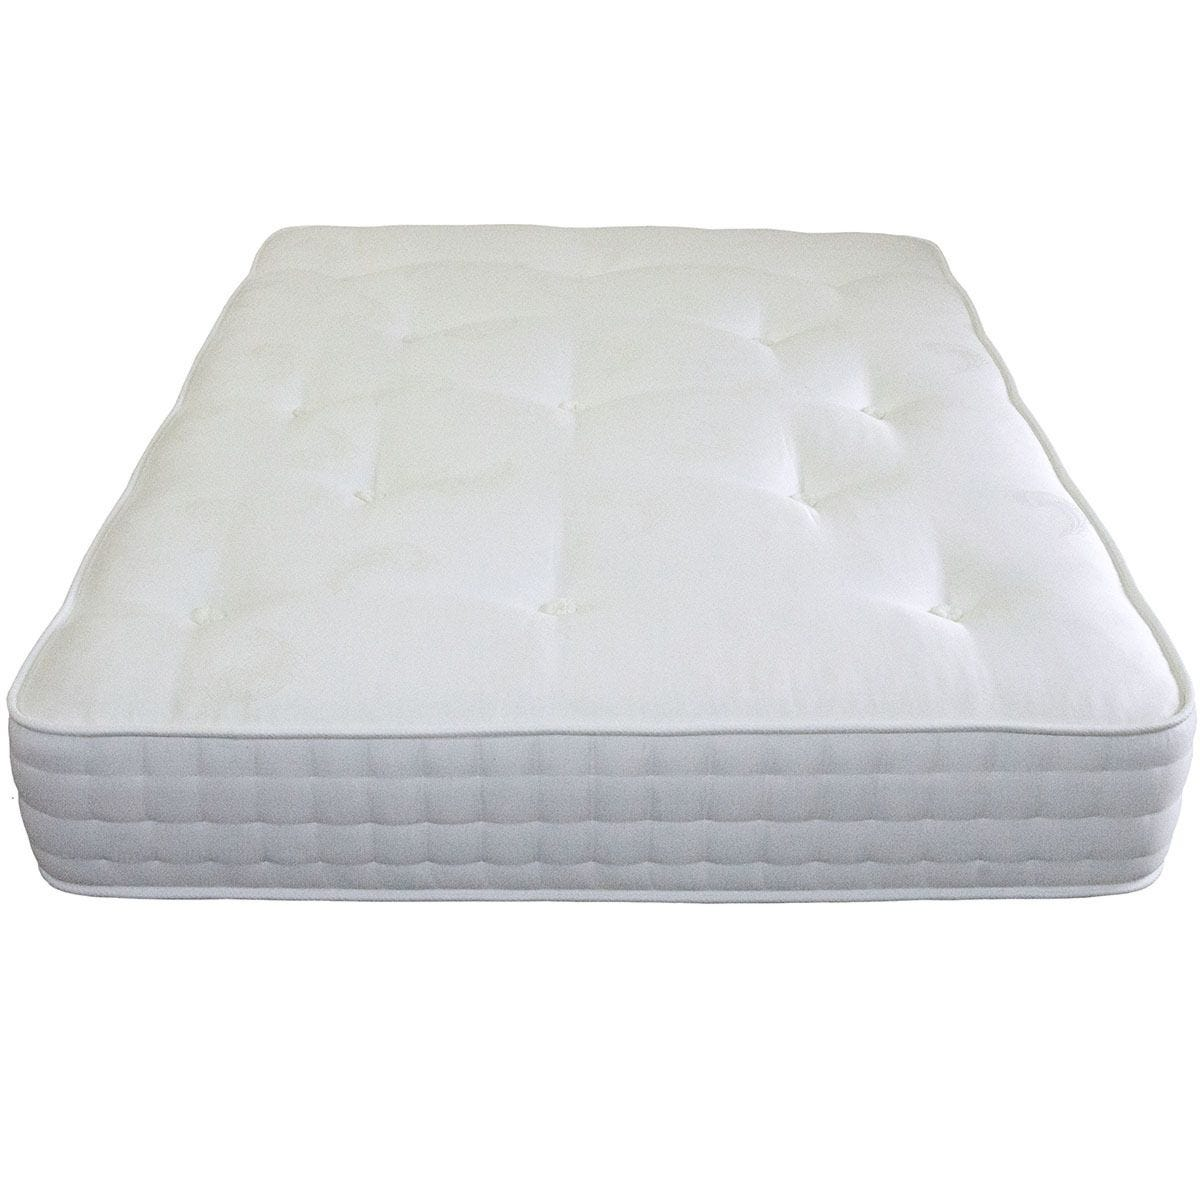 Comfy Deluxe 1000 Pocket Royal Mattress - White